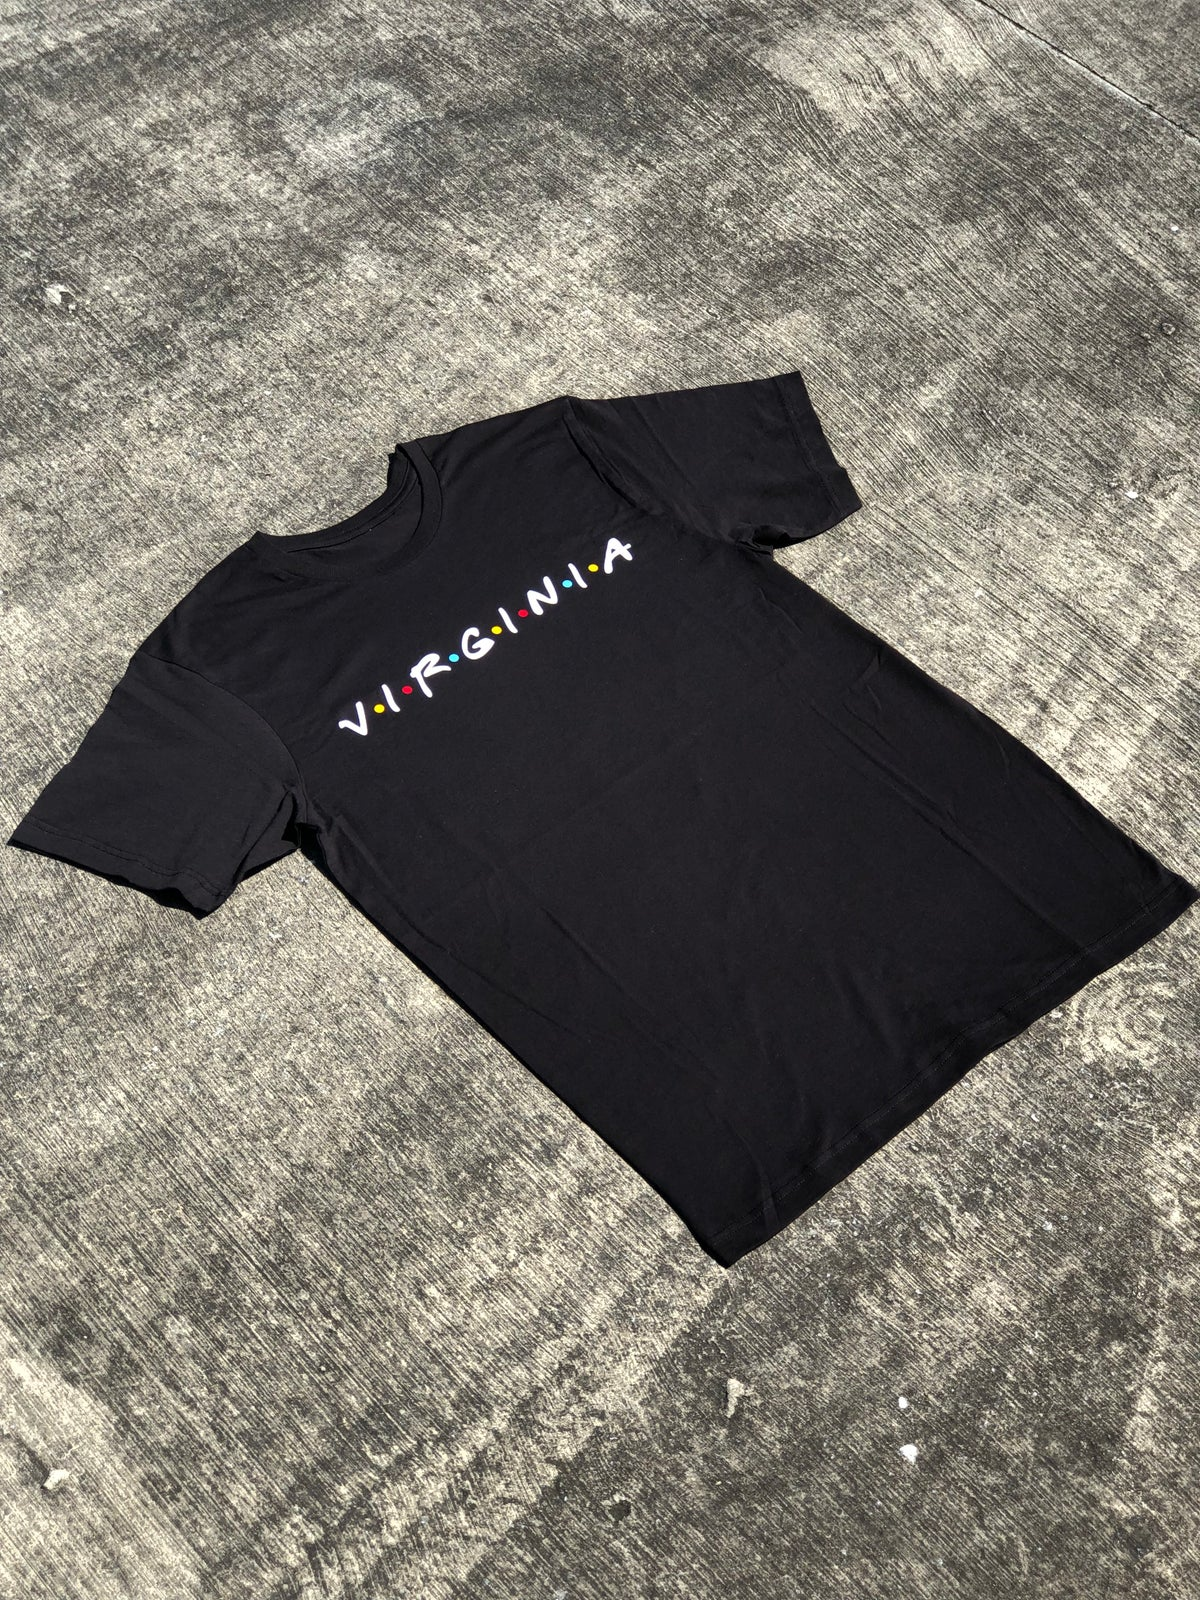 Image of FRIENDS OF VIRGINIA T-SHIRT